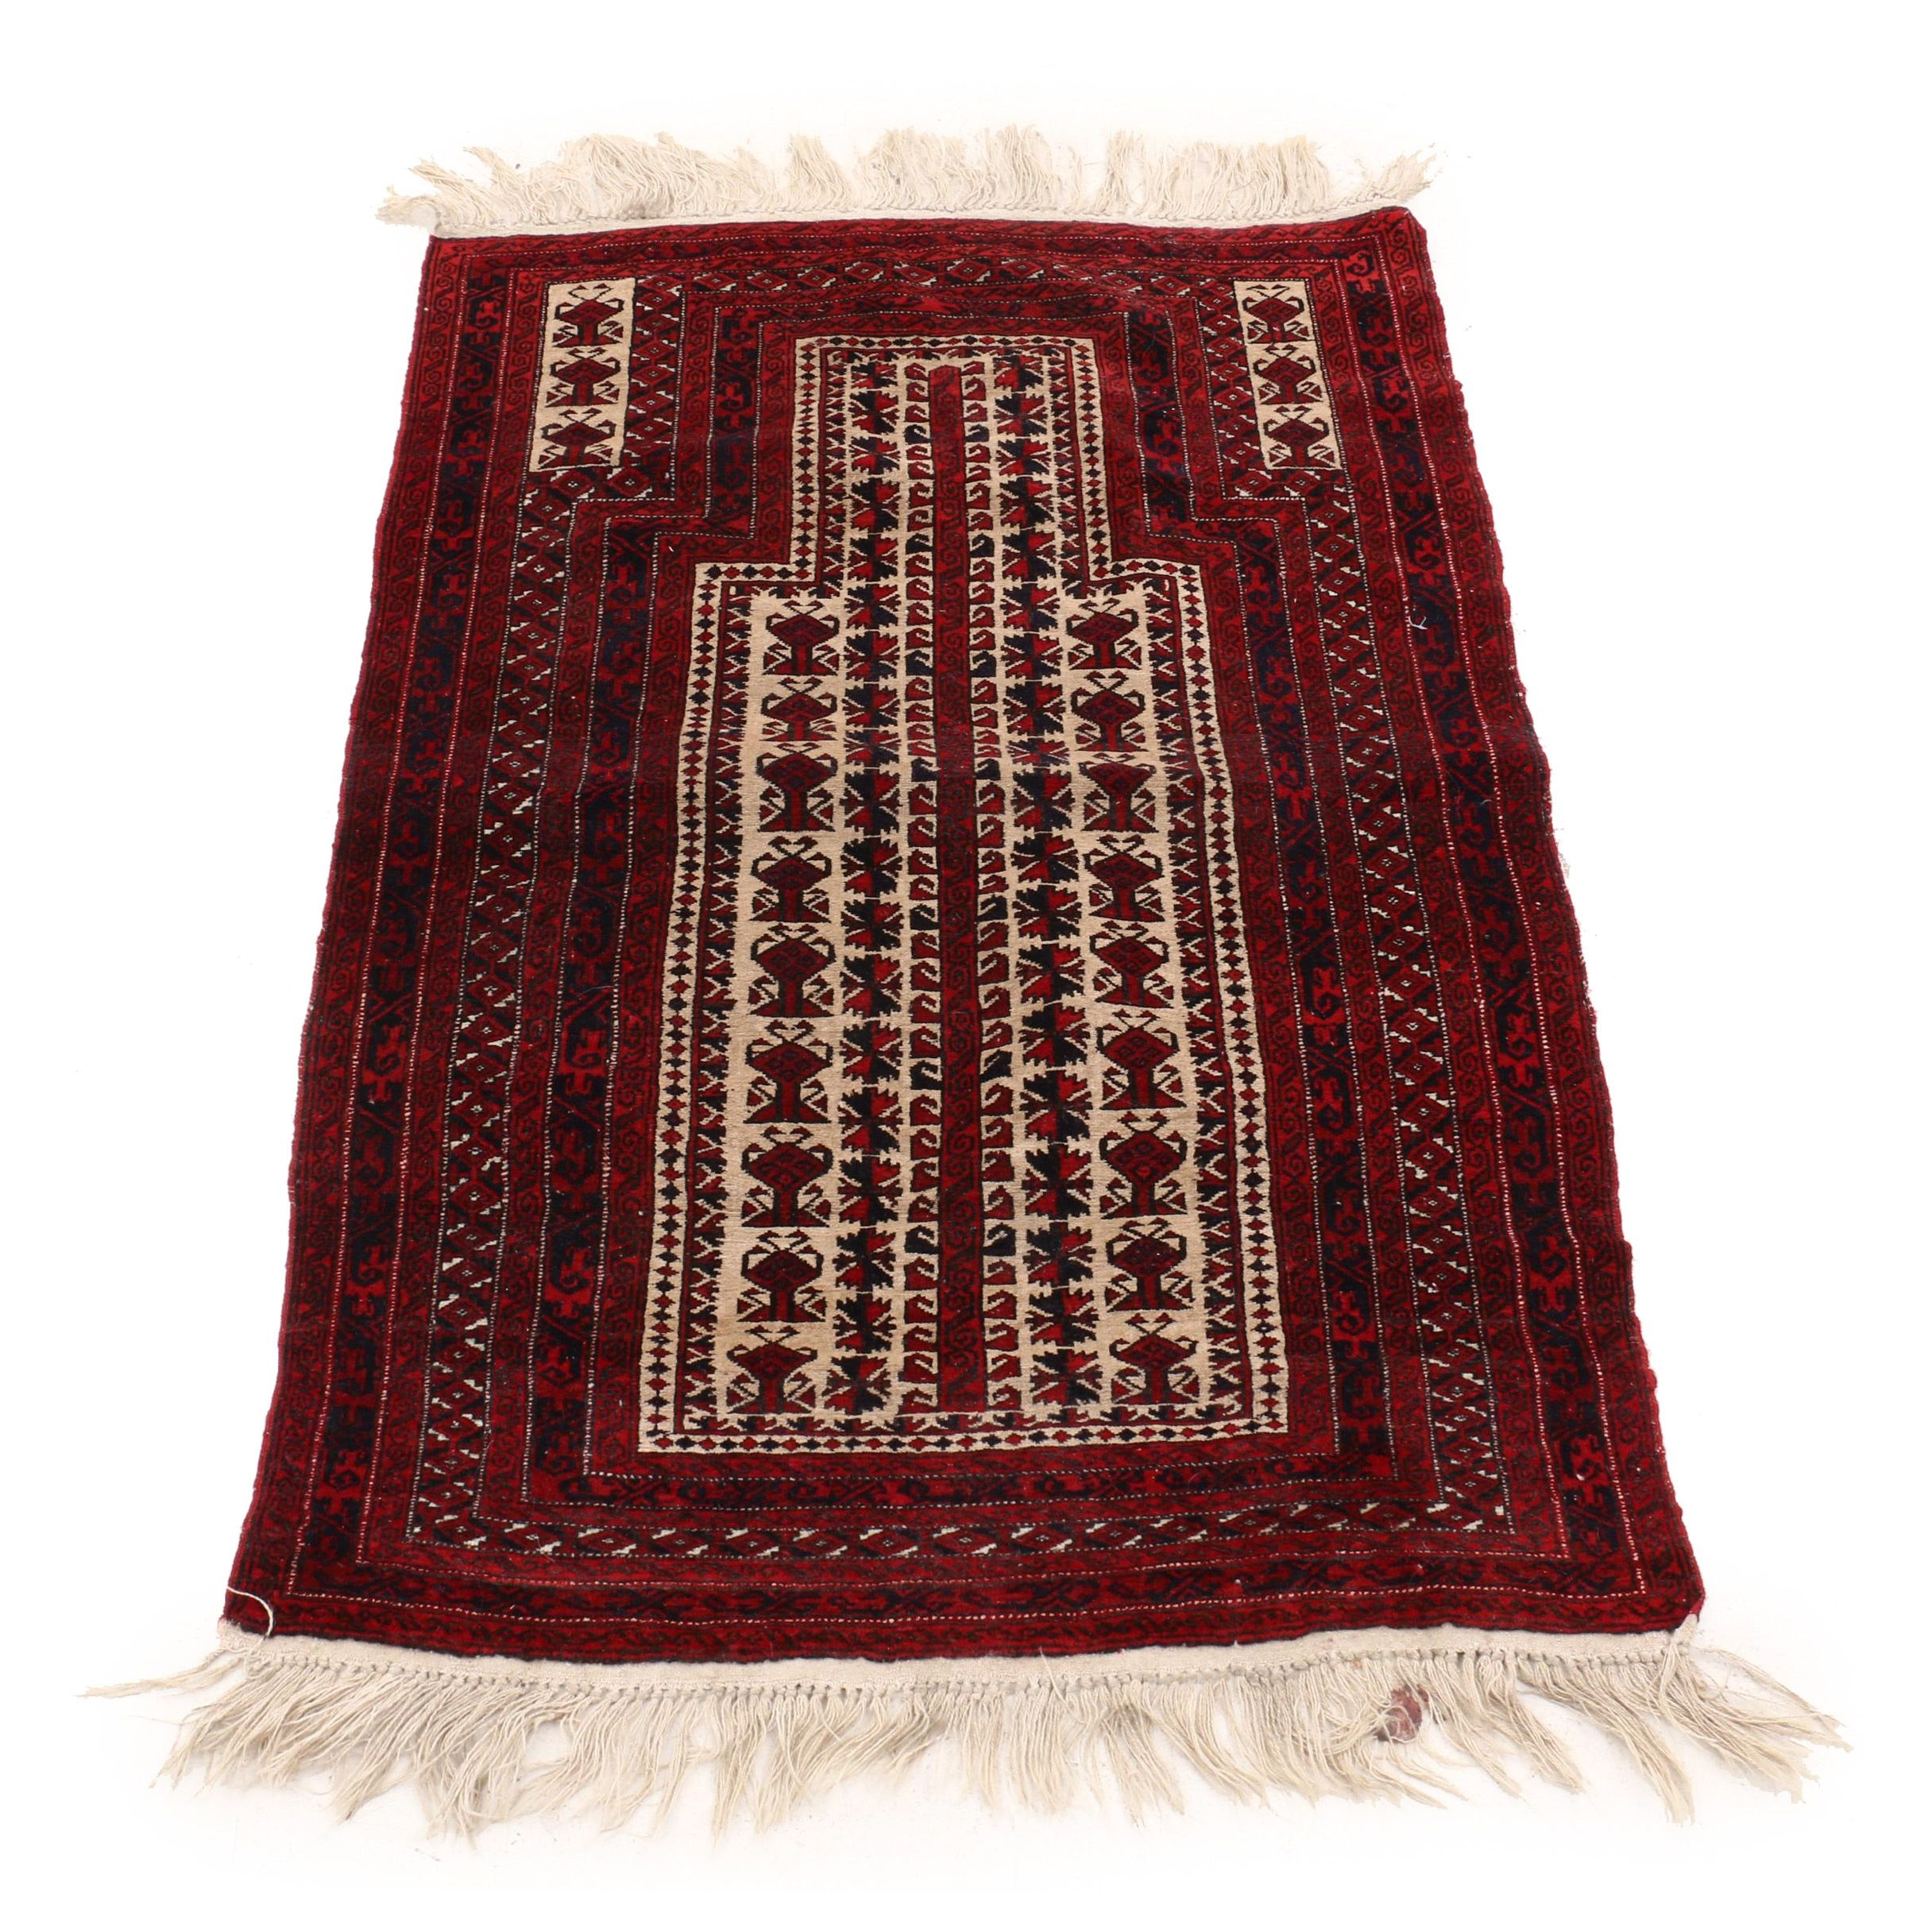 Hand-Knotted Persian Baluch Wool Prayer Rug